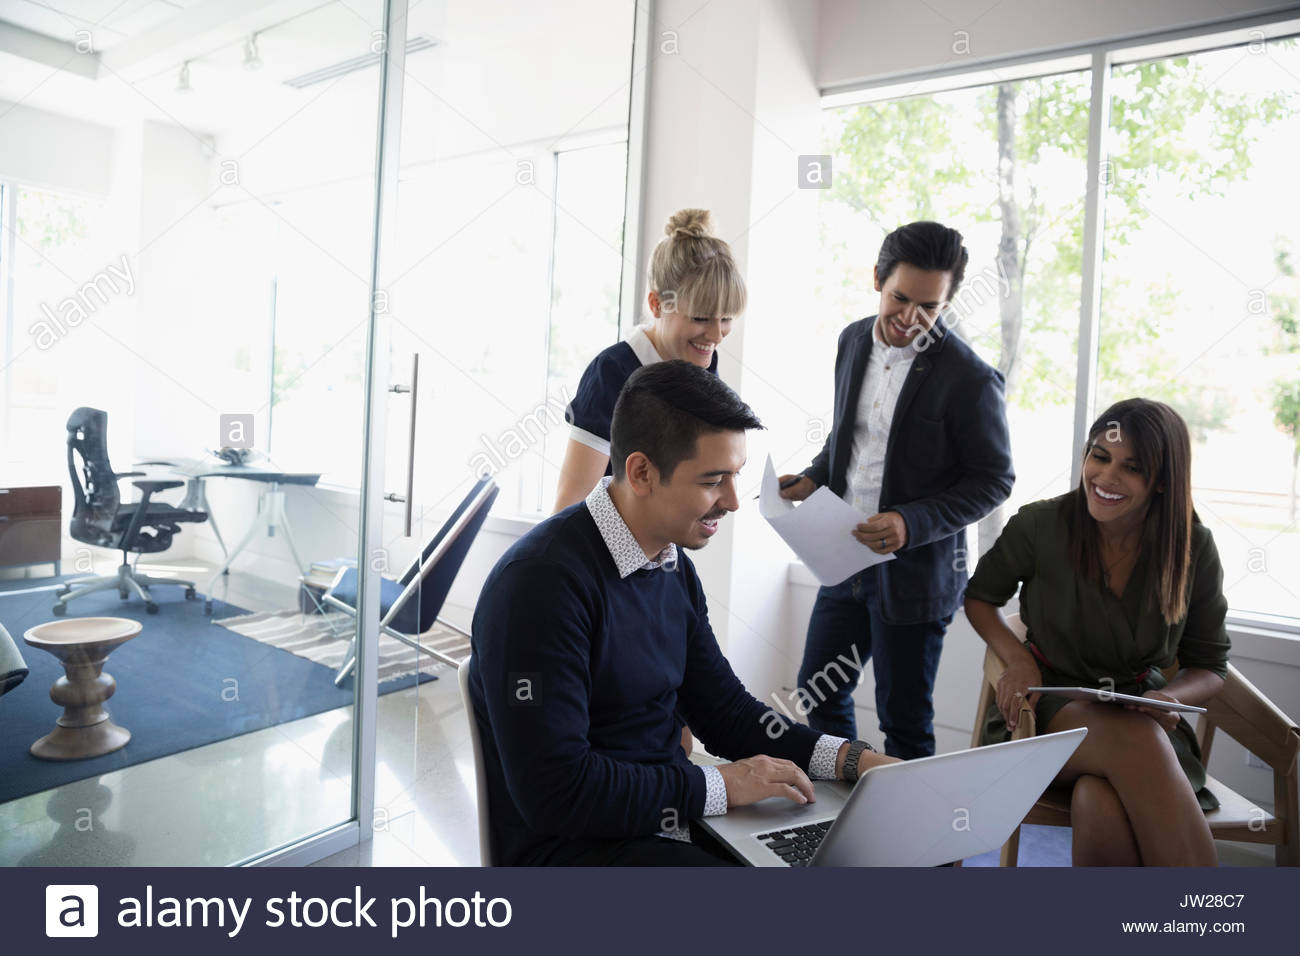 Business people using laptop in office meeting Photo Stock